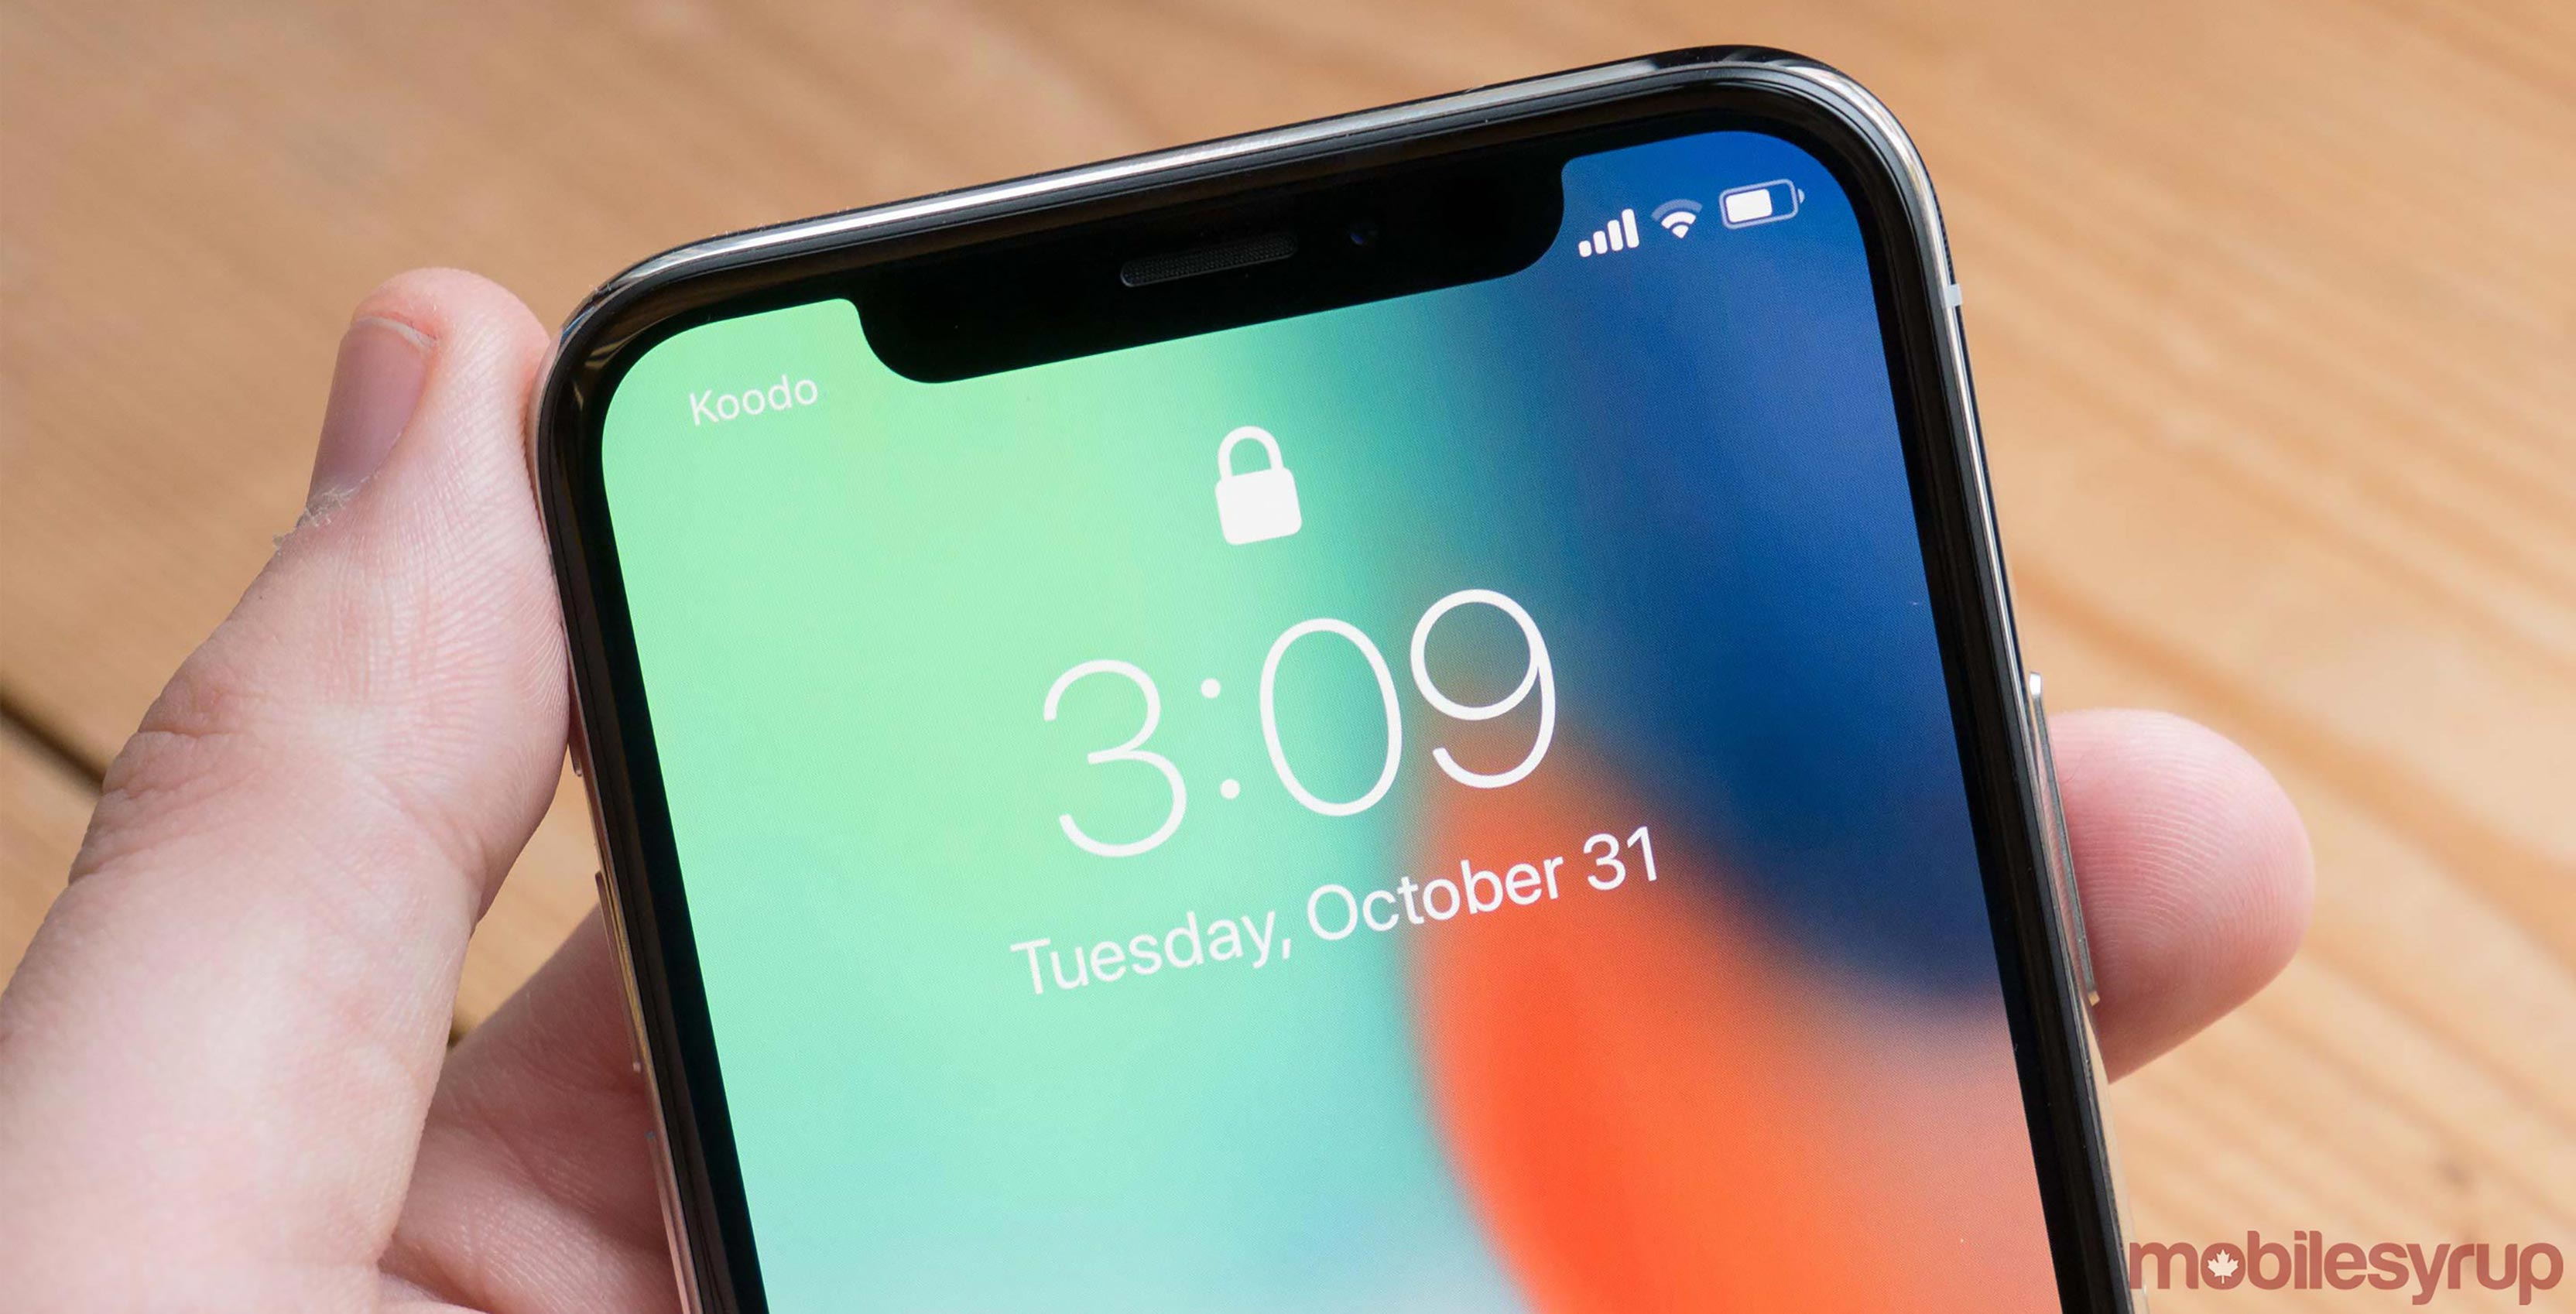 First dual-SIM iPhones could be right around the corner